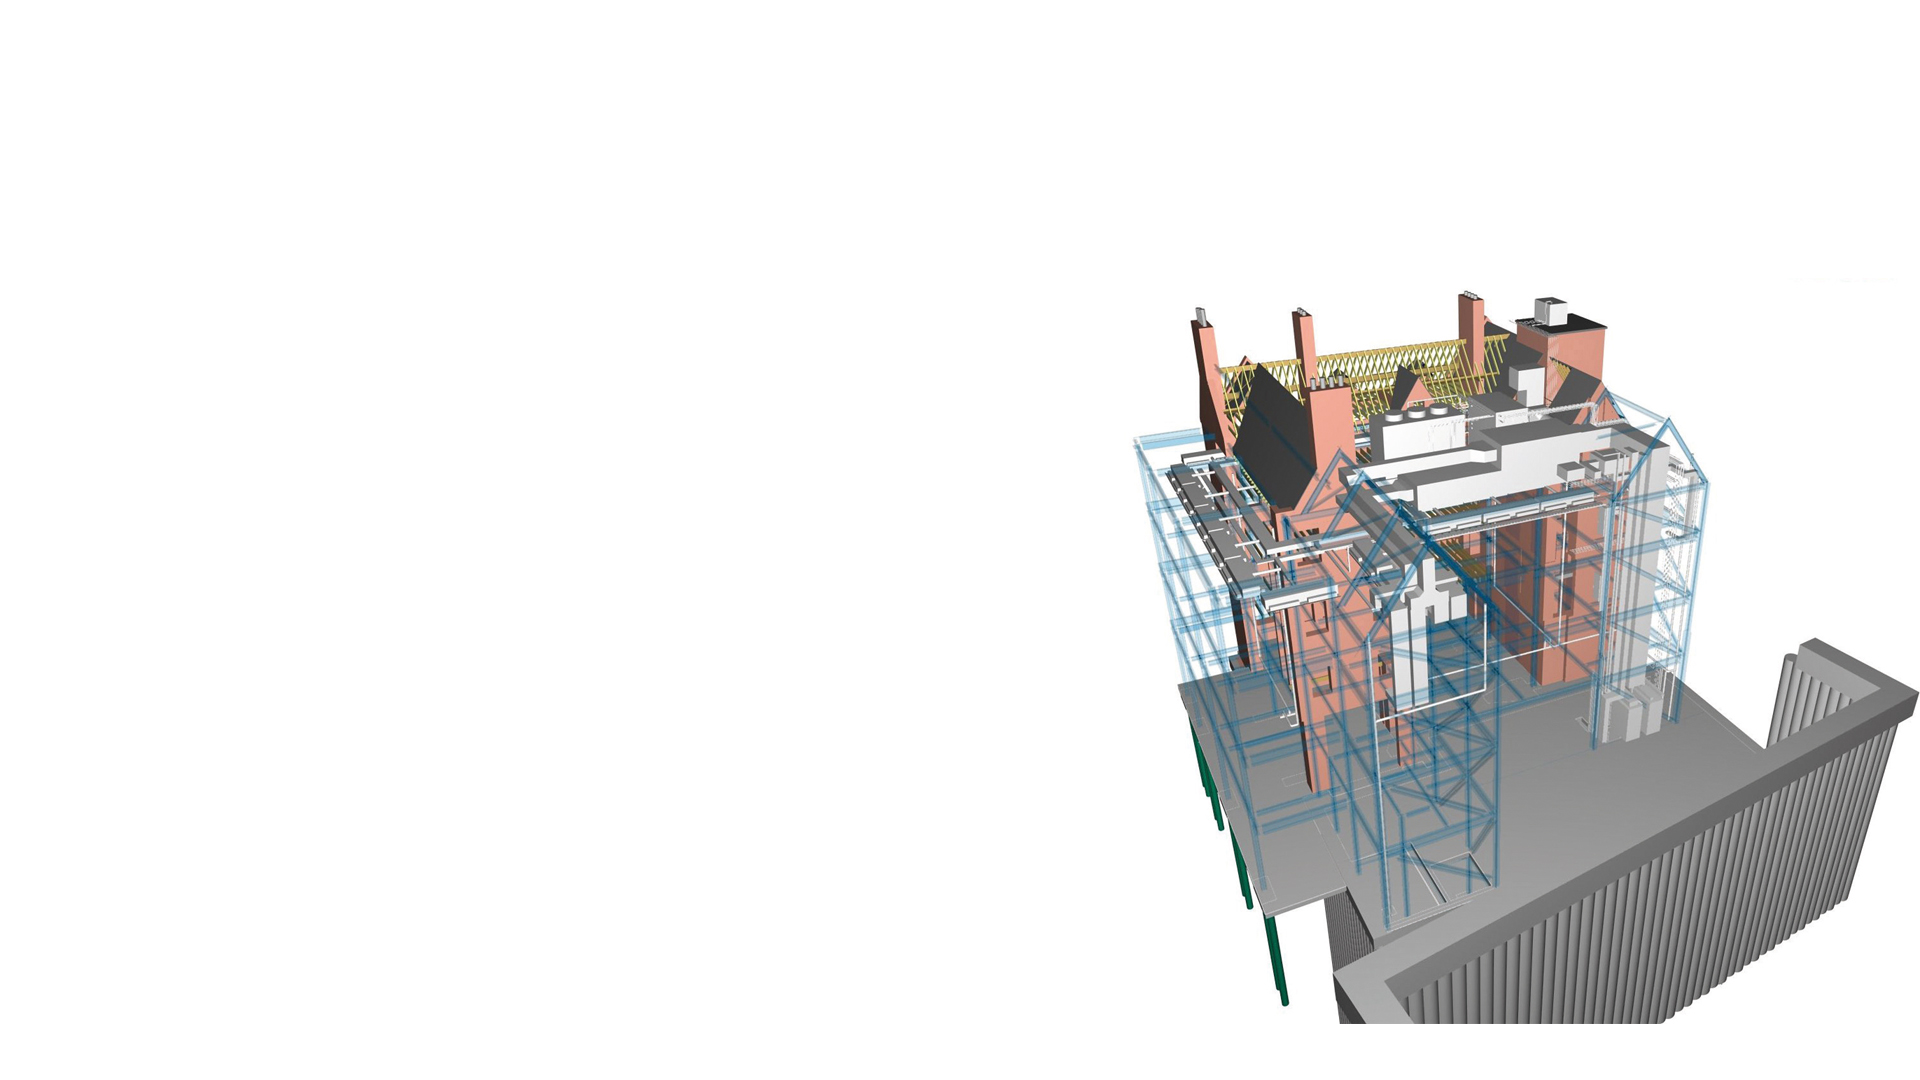 Image of 3D structural model by ARUP for the former Tooley Street Fire Station